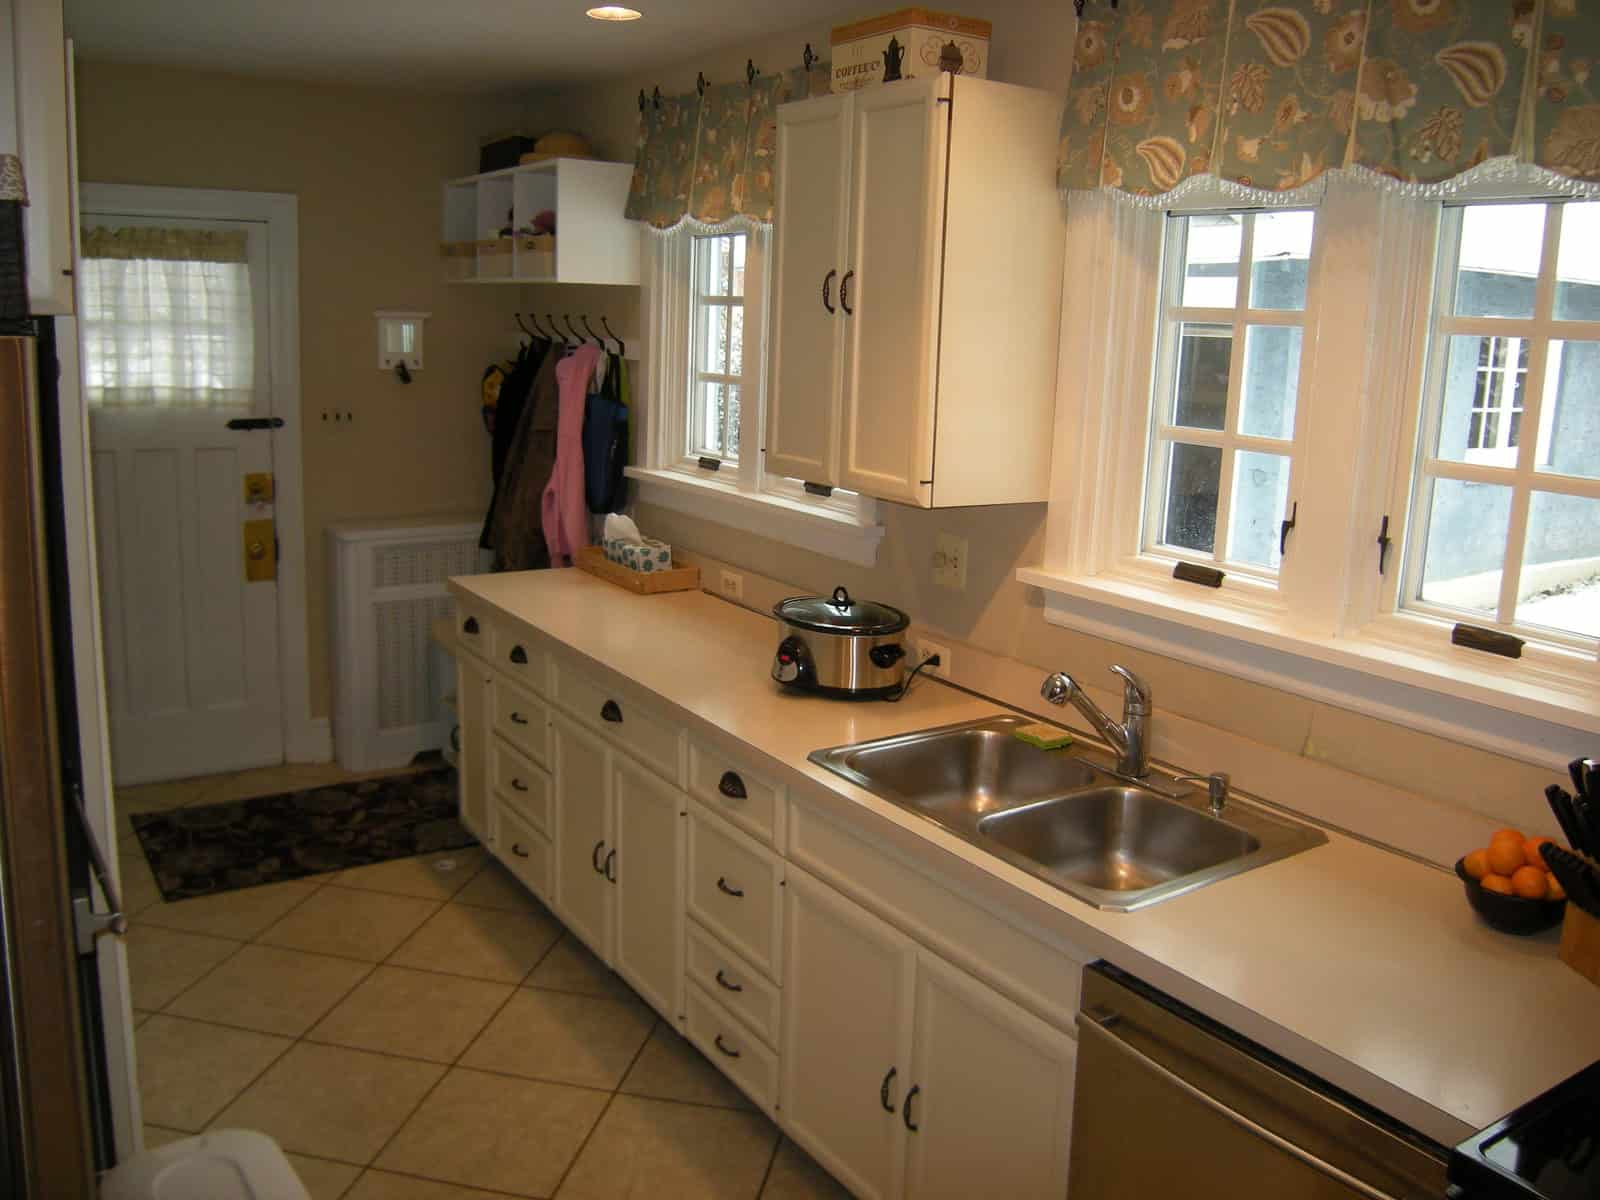 pictures of galley kitchen remodels kitchen remodel what would you do heartwork organizing 7453